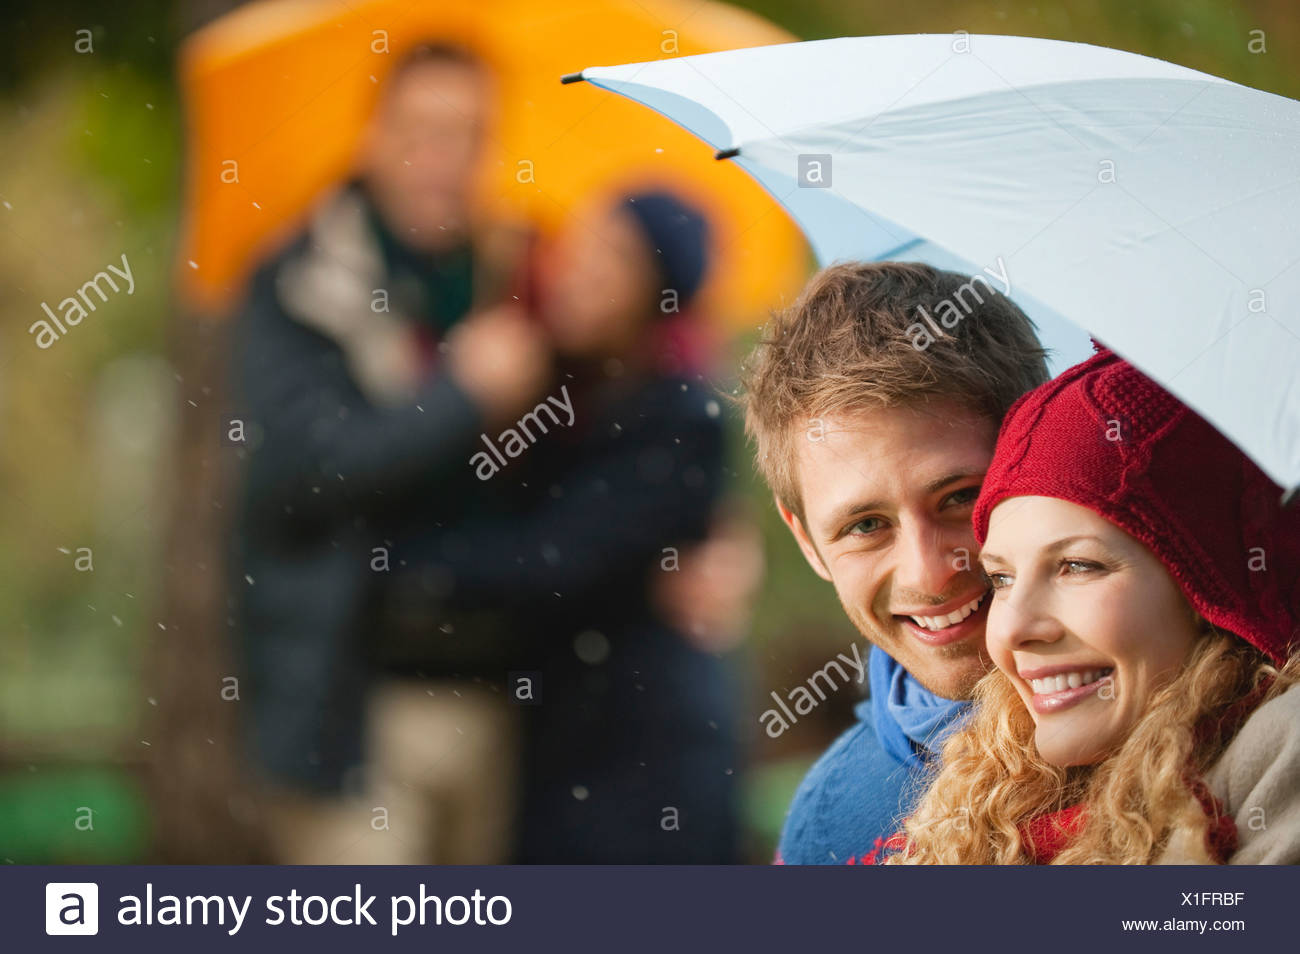 Germany, Bavaria, English Garden, Four persons in beer garden, holding umbrella, smiling, portrait, close-up - Stock Image